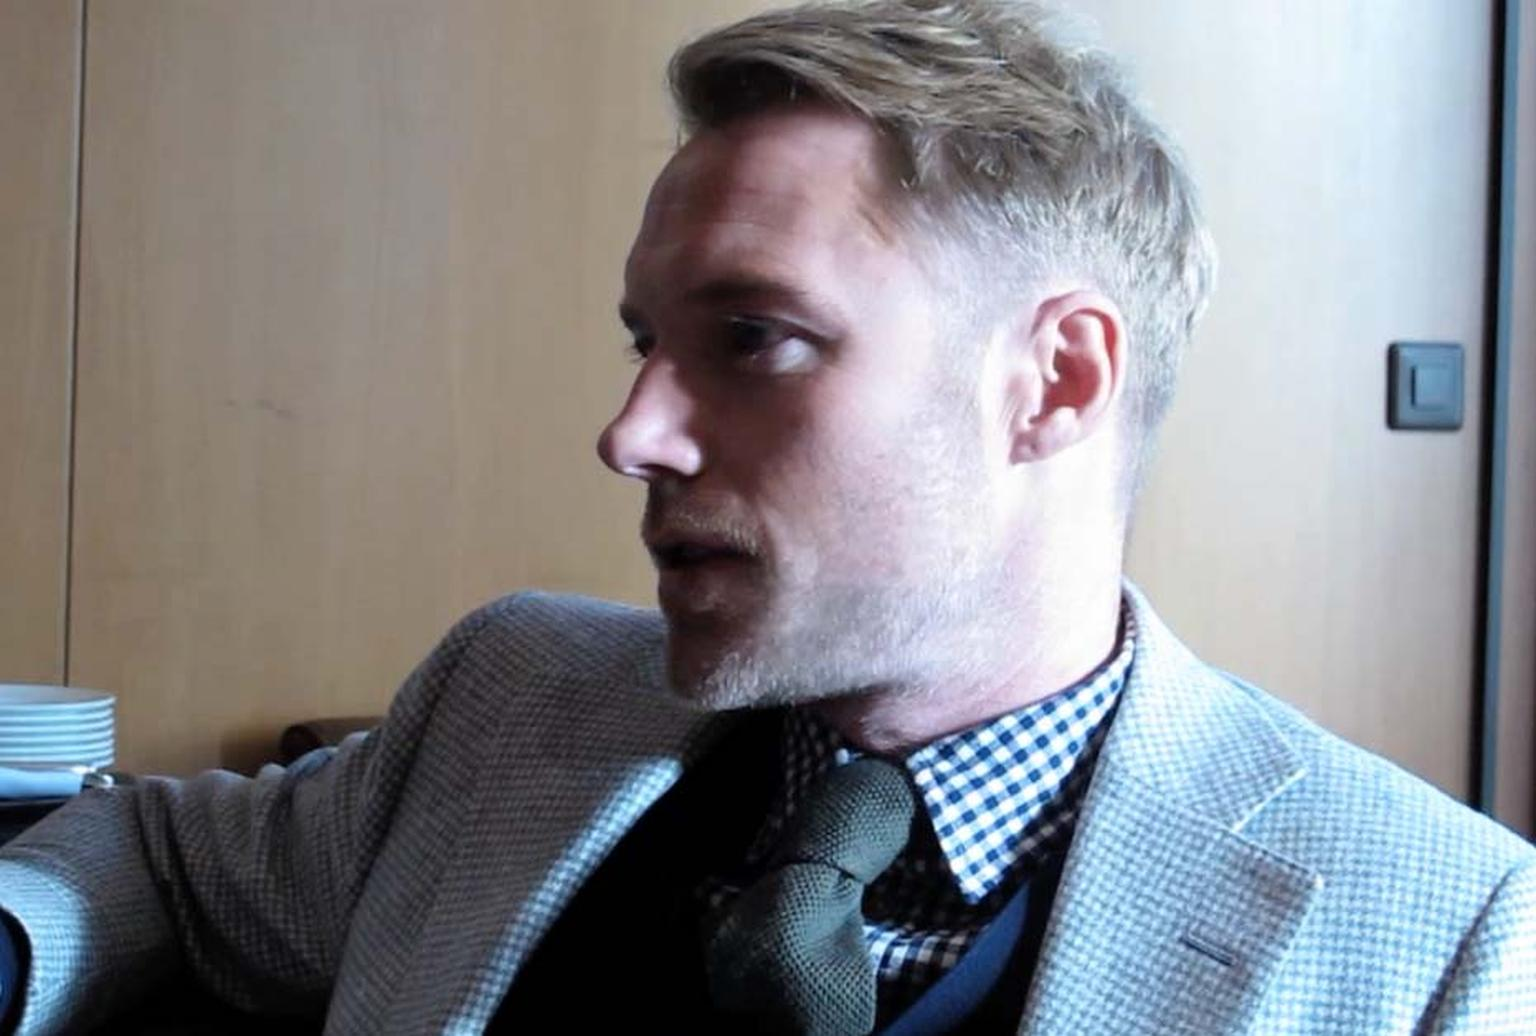 Ronan Keating met with Maria Doulton at the SIHH 2014 to discuss his IWC watch collection